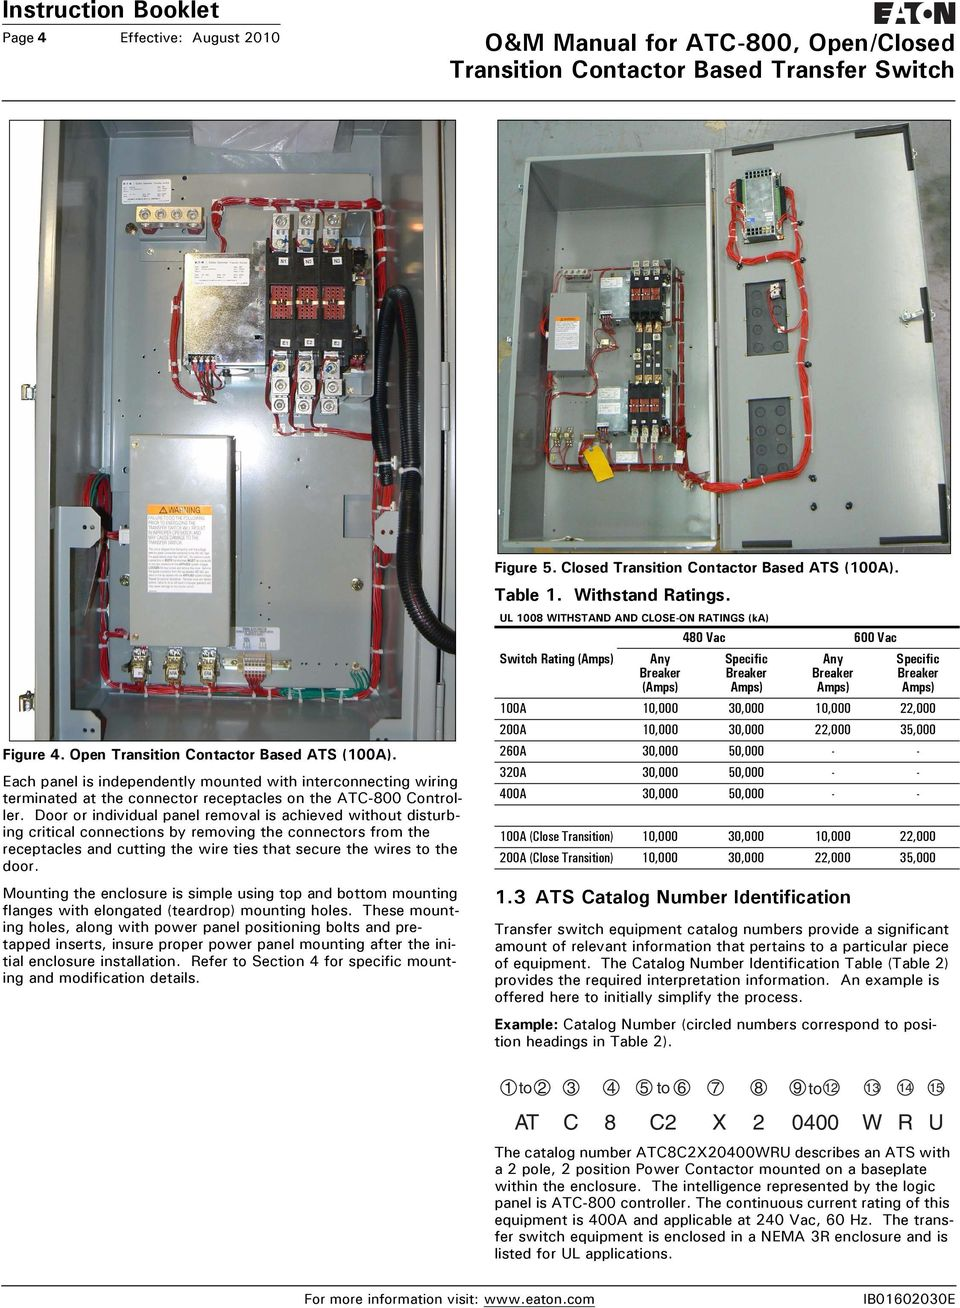 hight resolution of eaton atc 800 wiring diagram wiring diagrams secondo u0026 m manual for atc 800